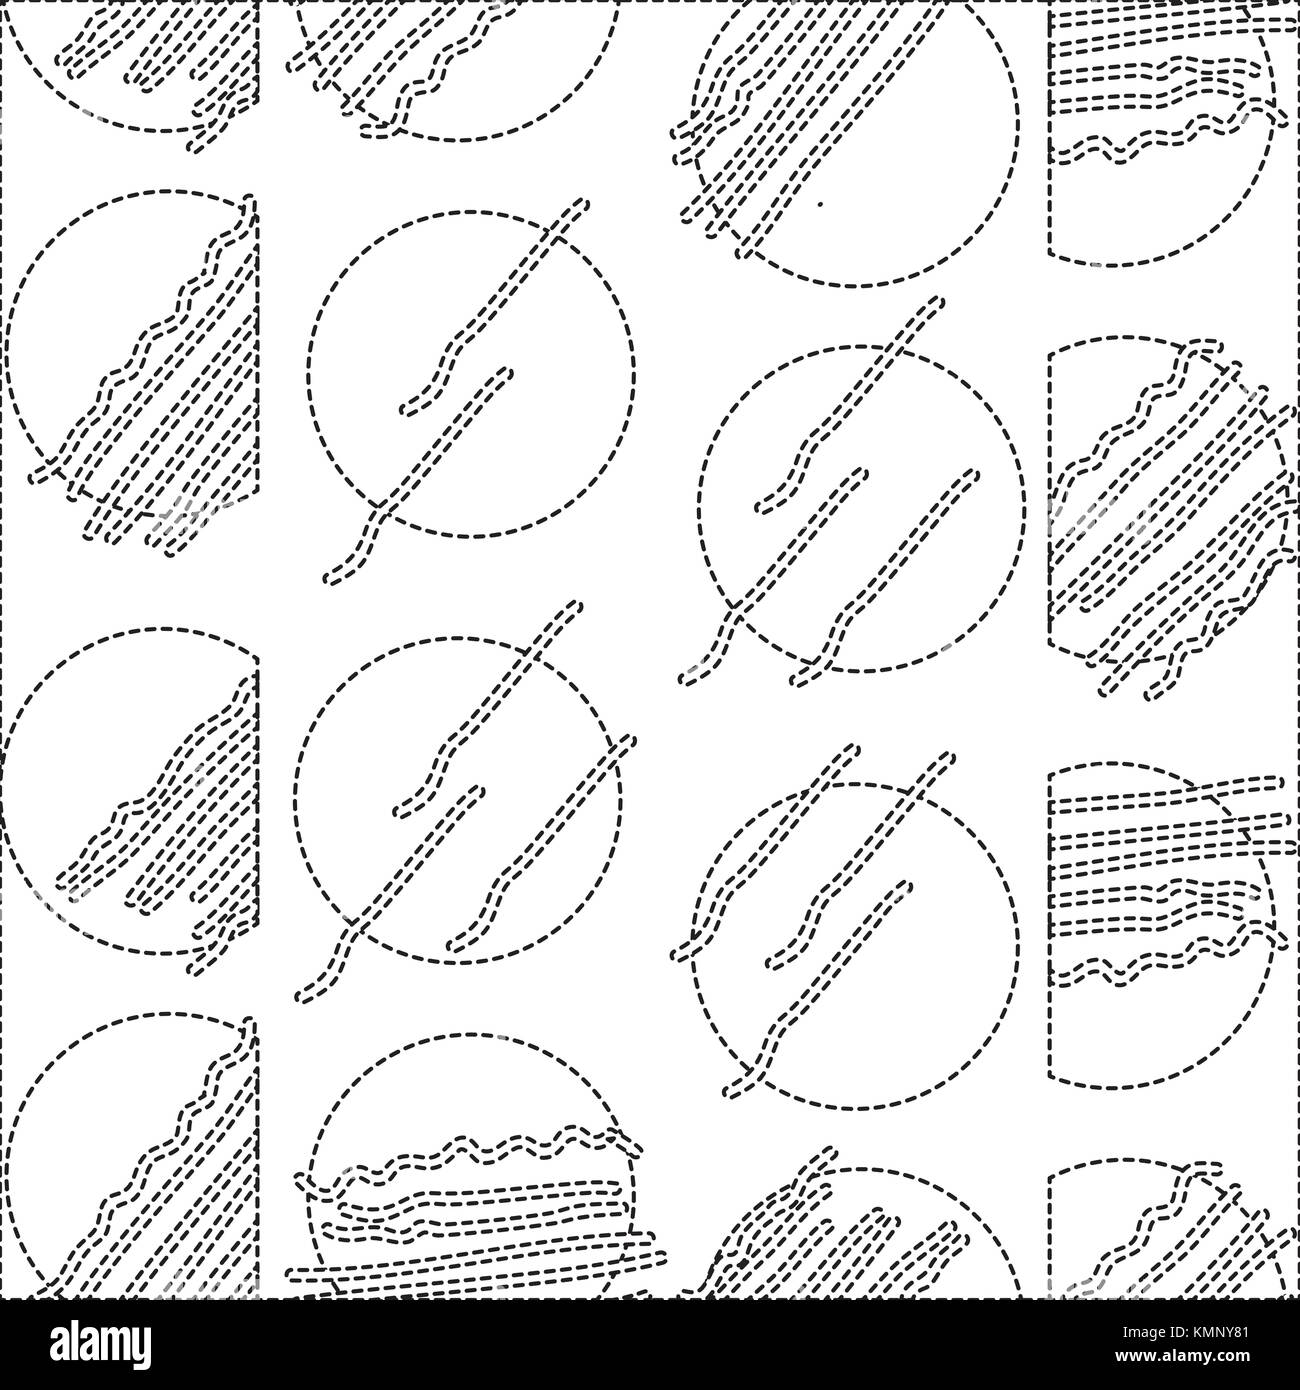 dotted shape abstract circle memphis style background - Stock Image